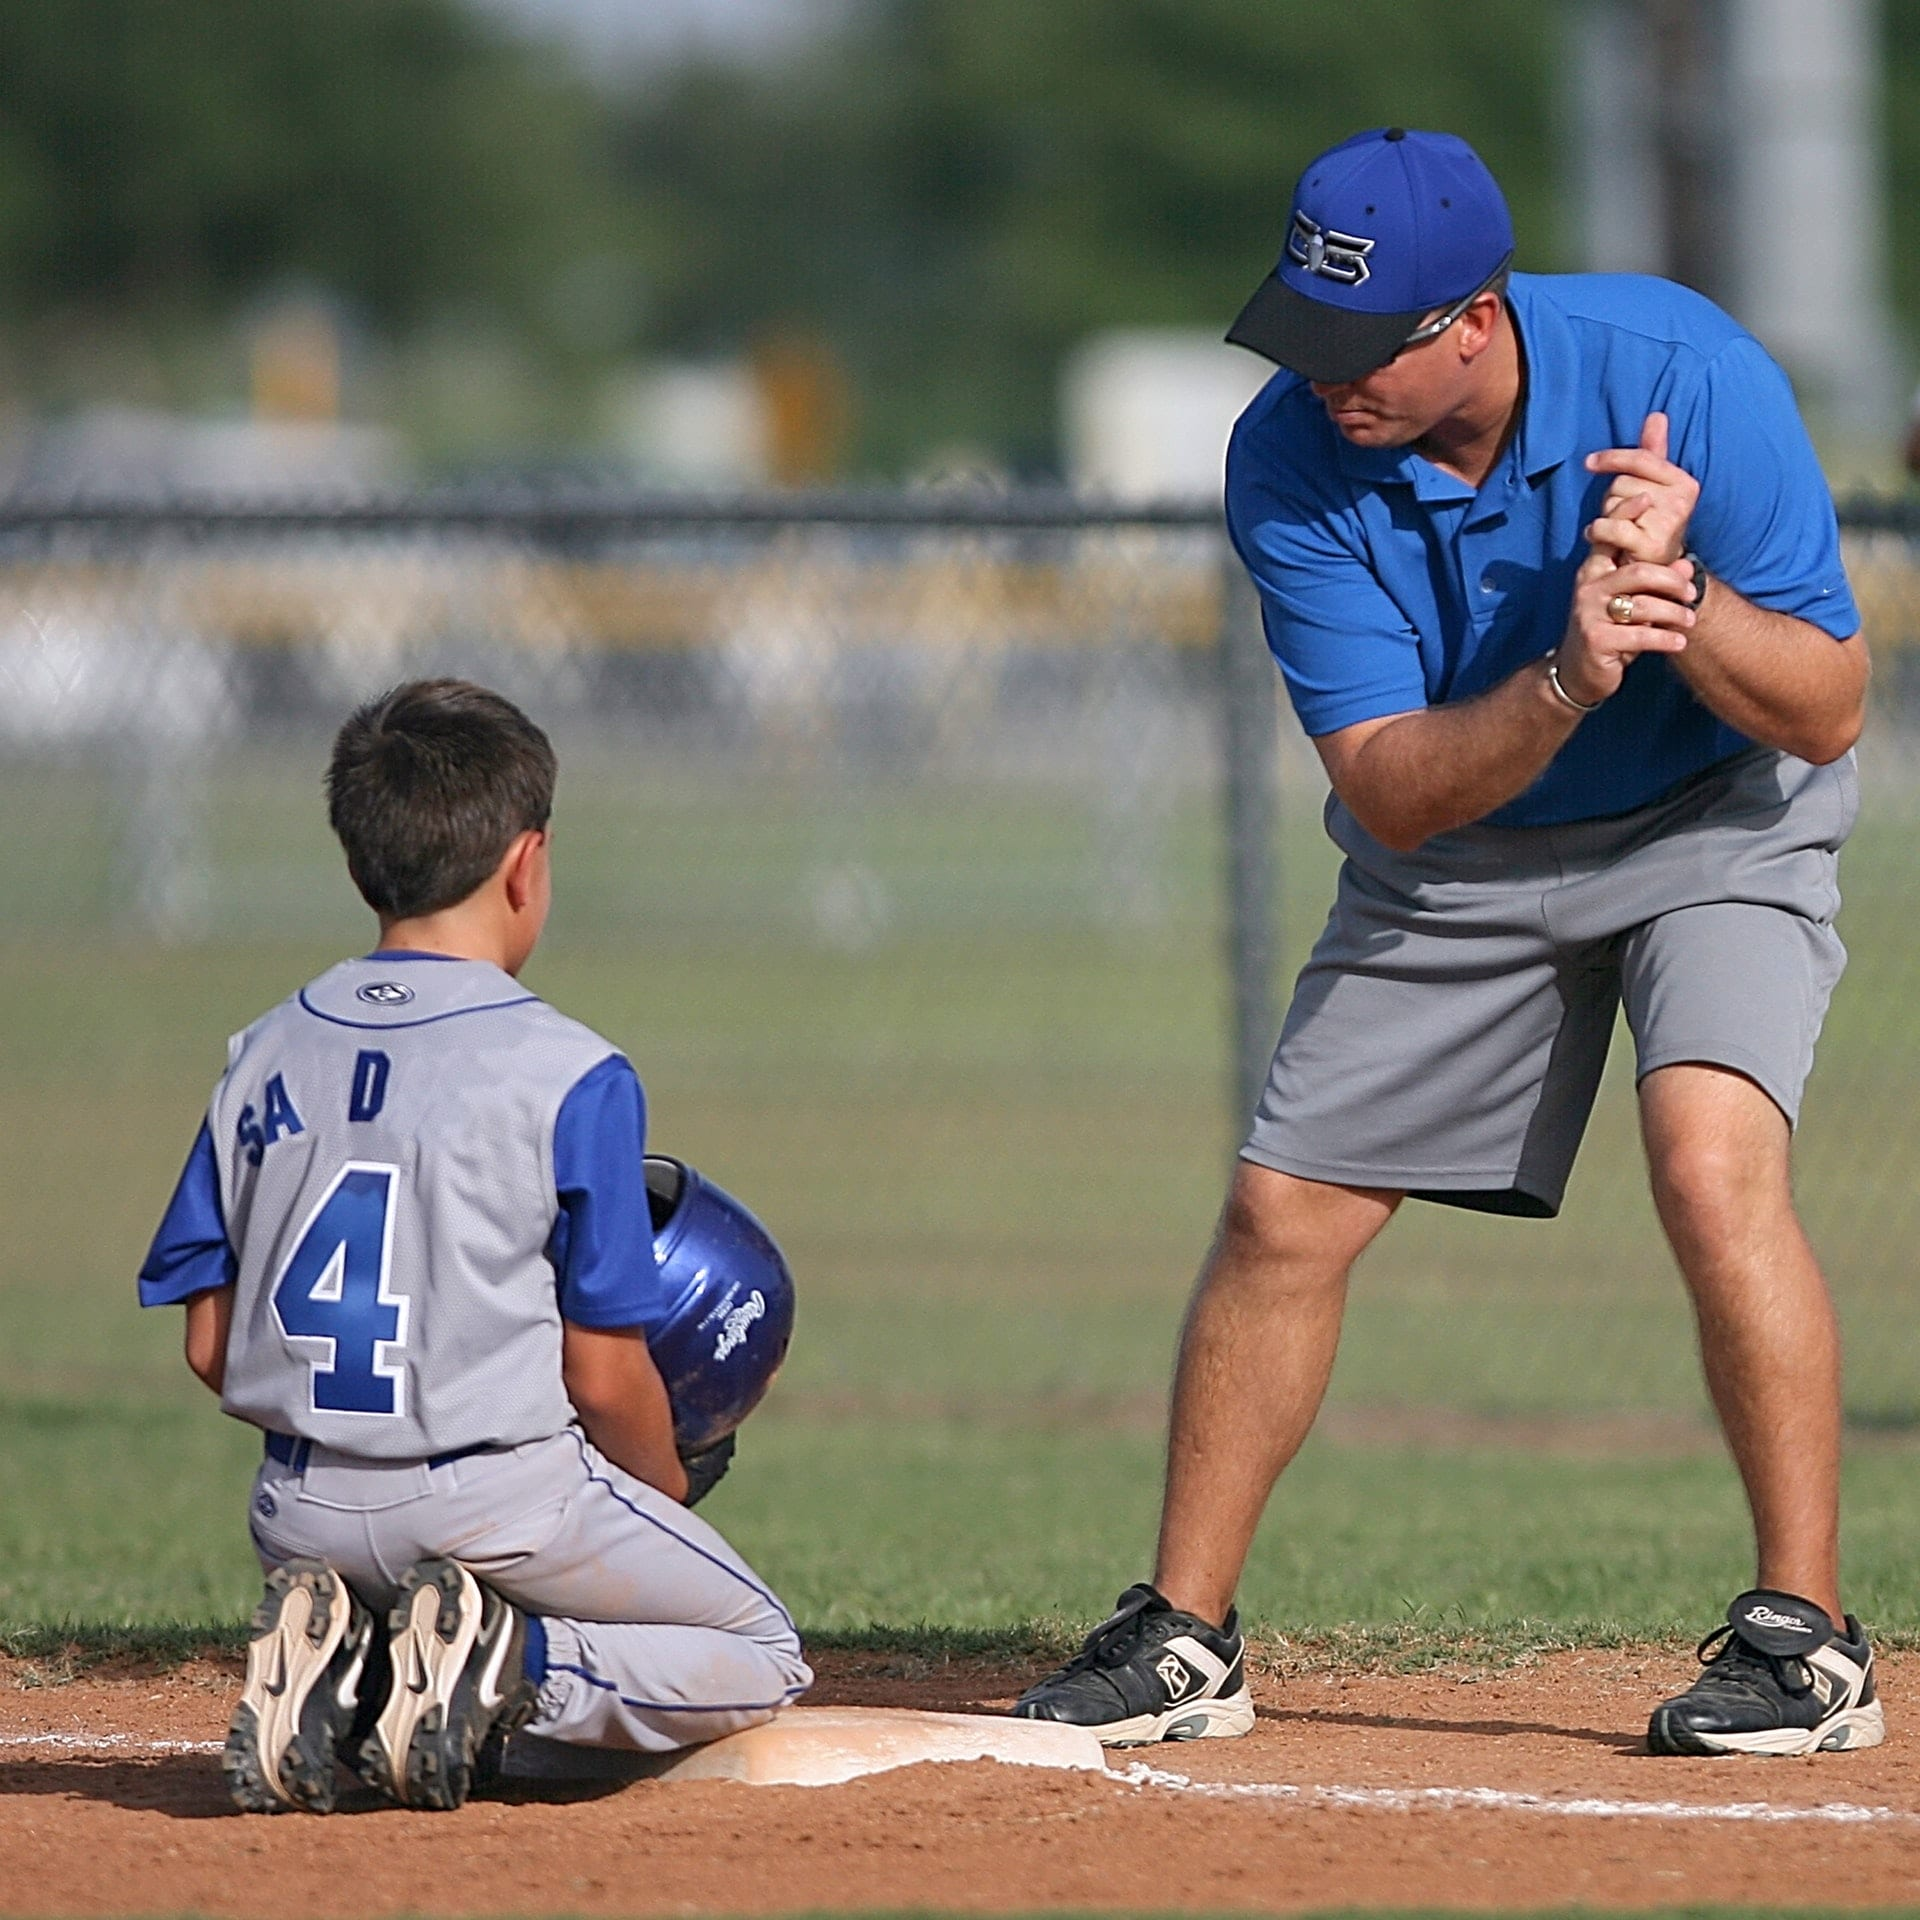 365 Days to Better Baseball – Coaching Tip of the Day